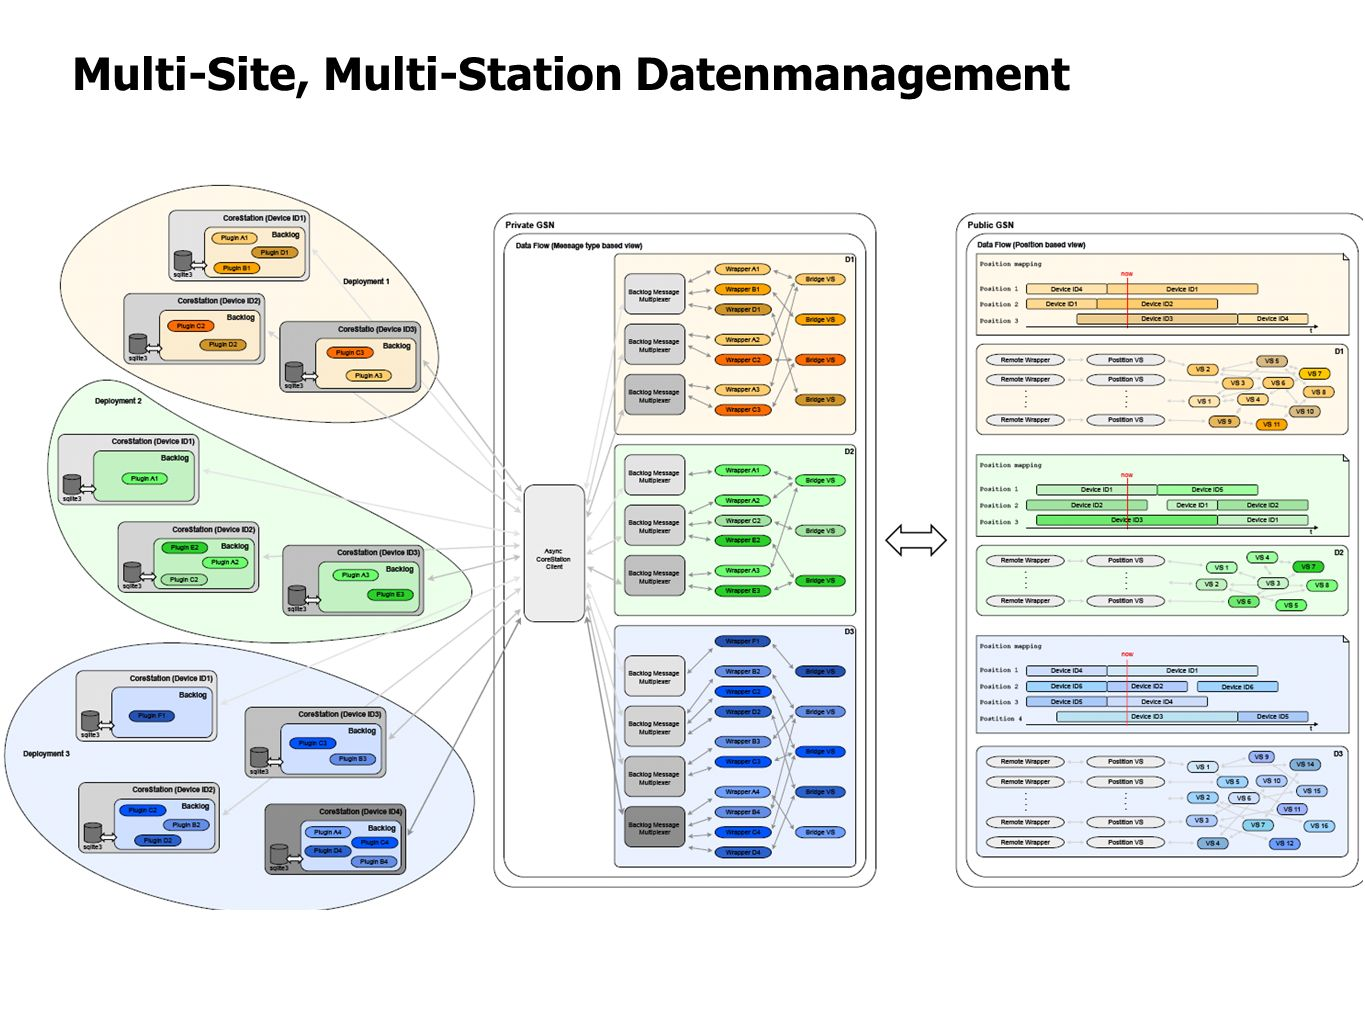 Multi-Site, Multi-Station Datenmanagement